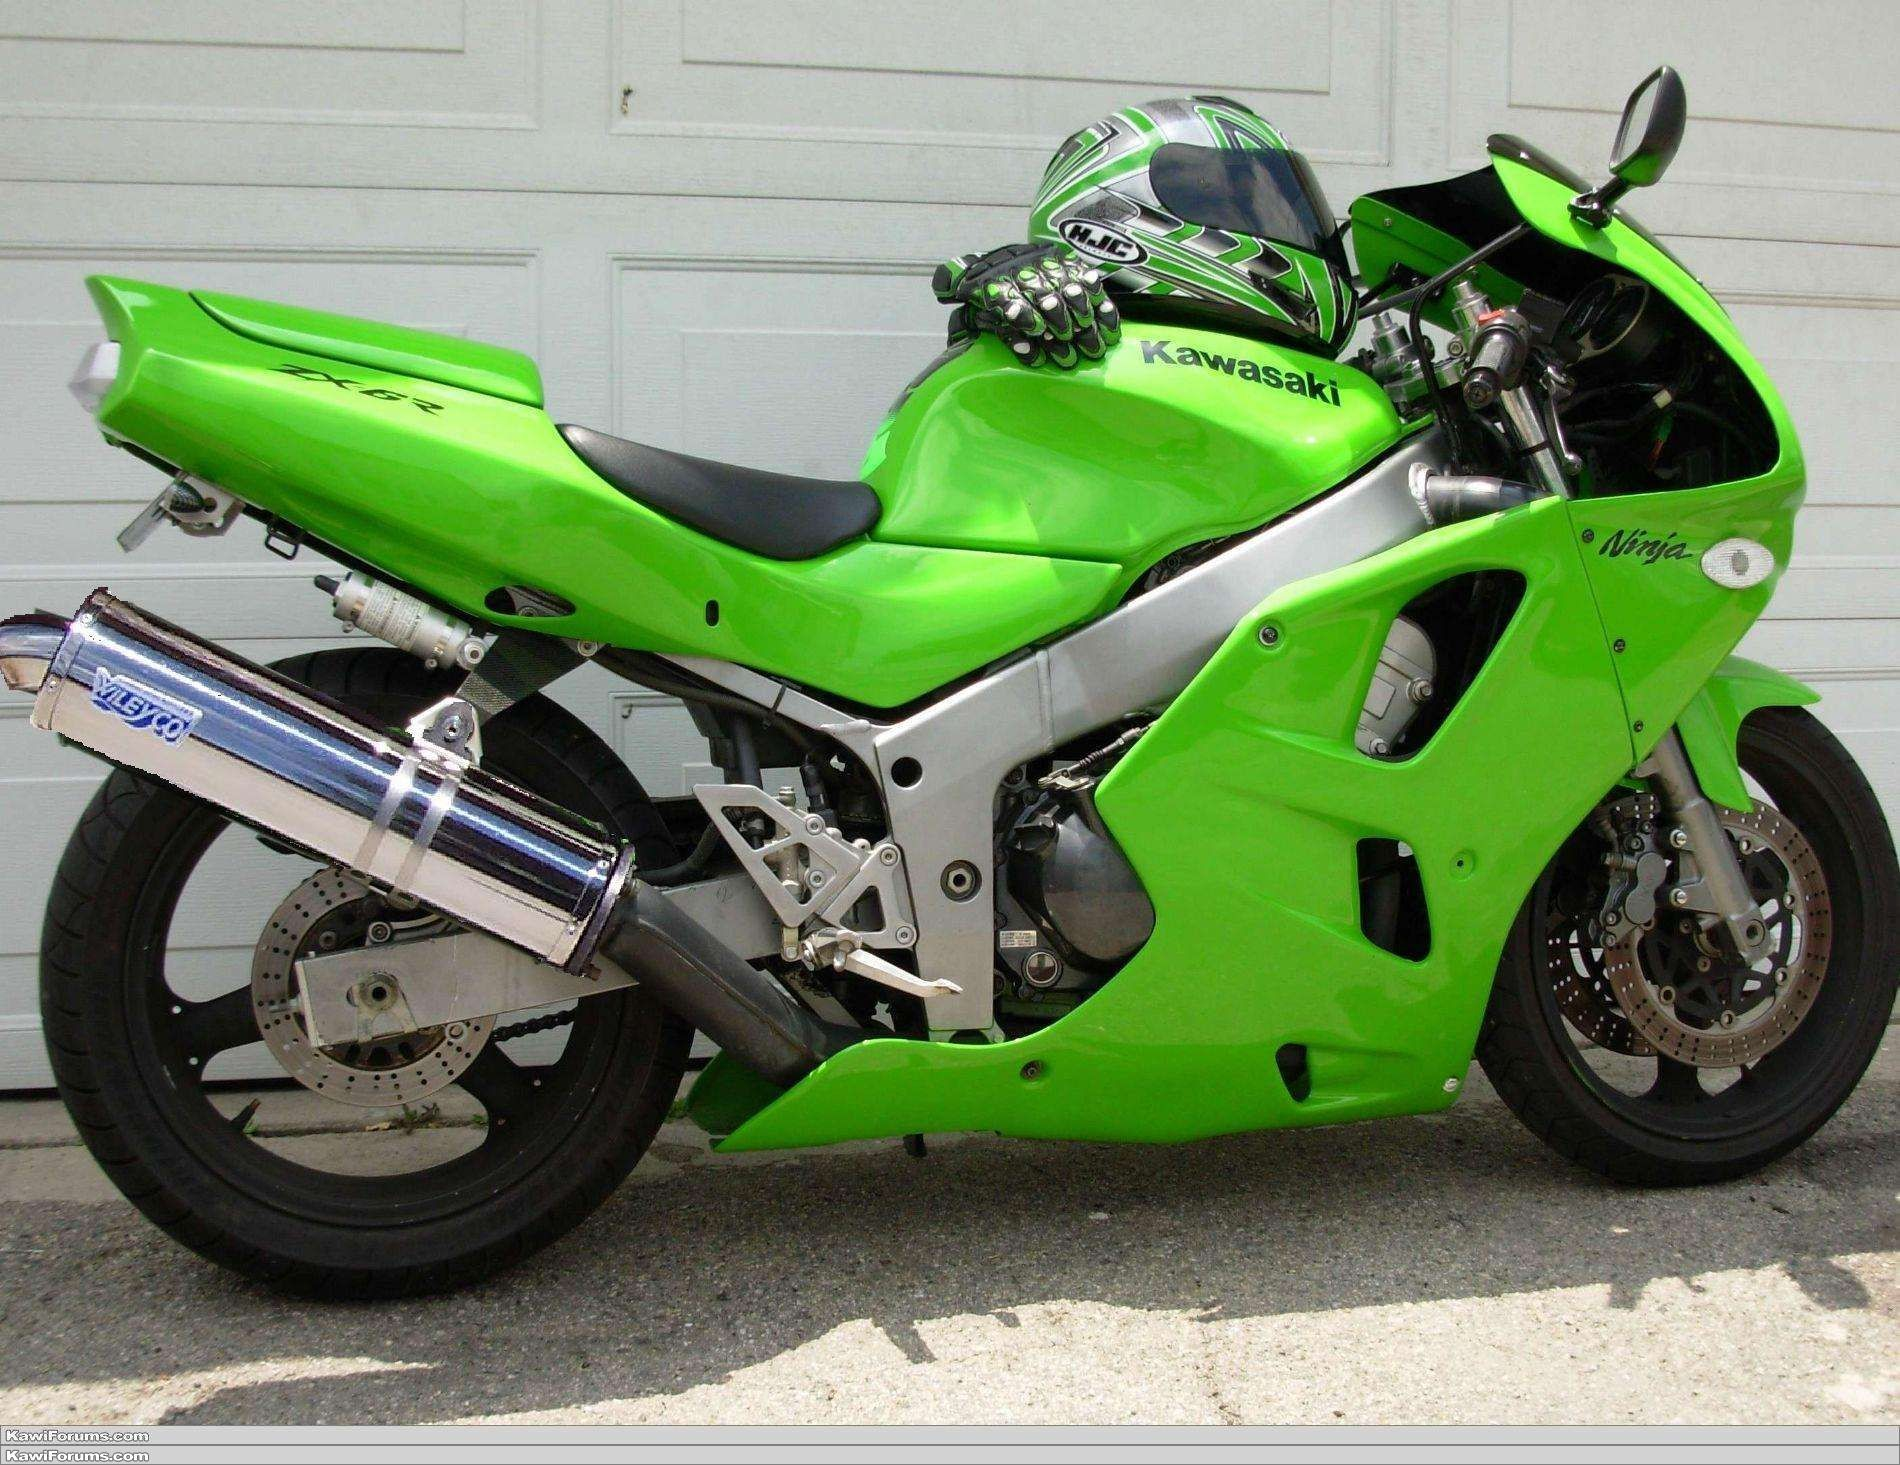 1995 Kawasaki Ninja Zx 6 R Pics Specs And Information